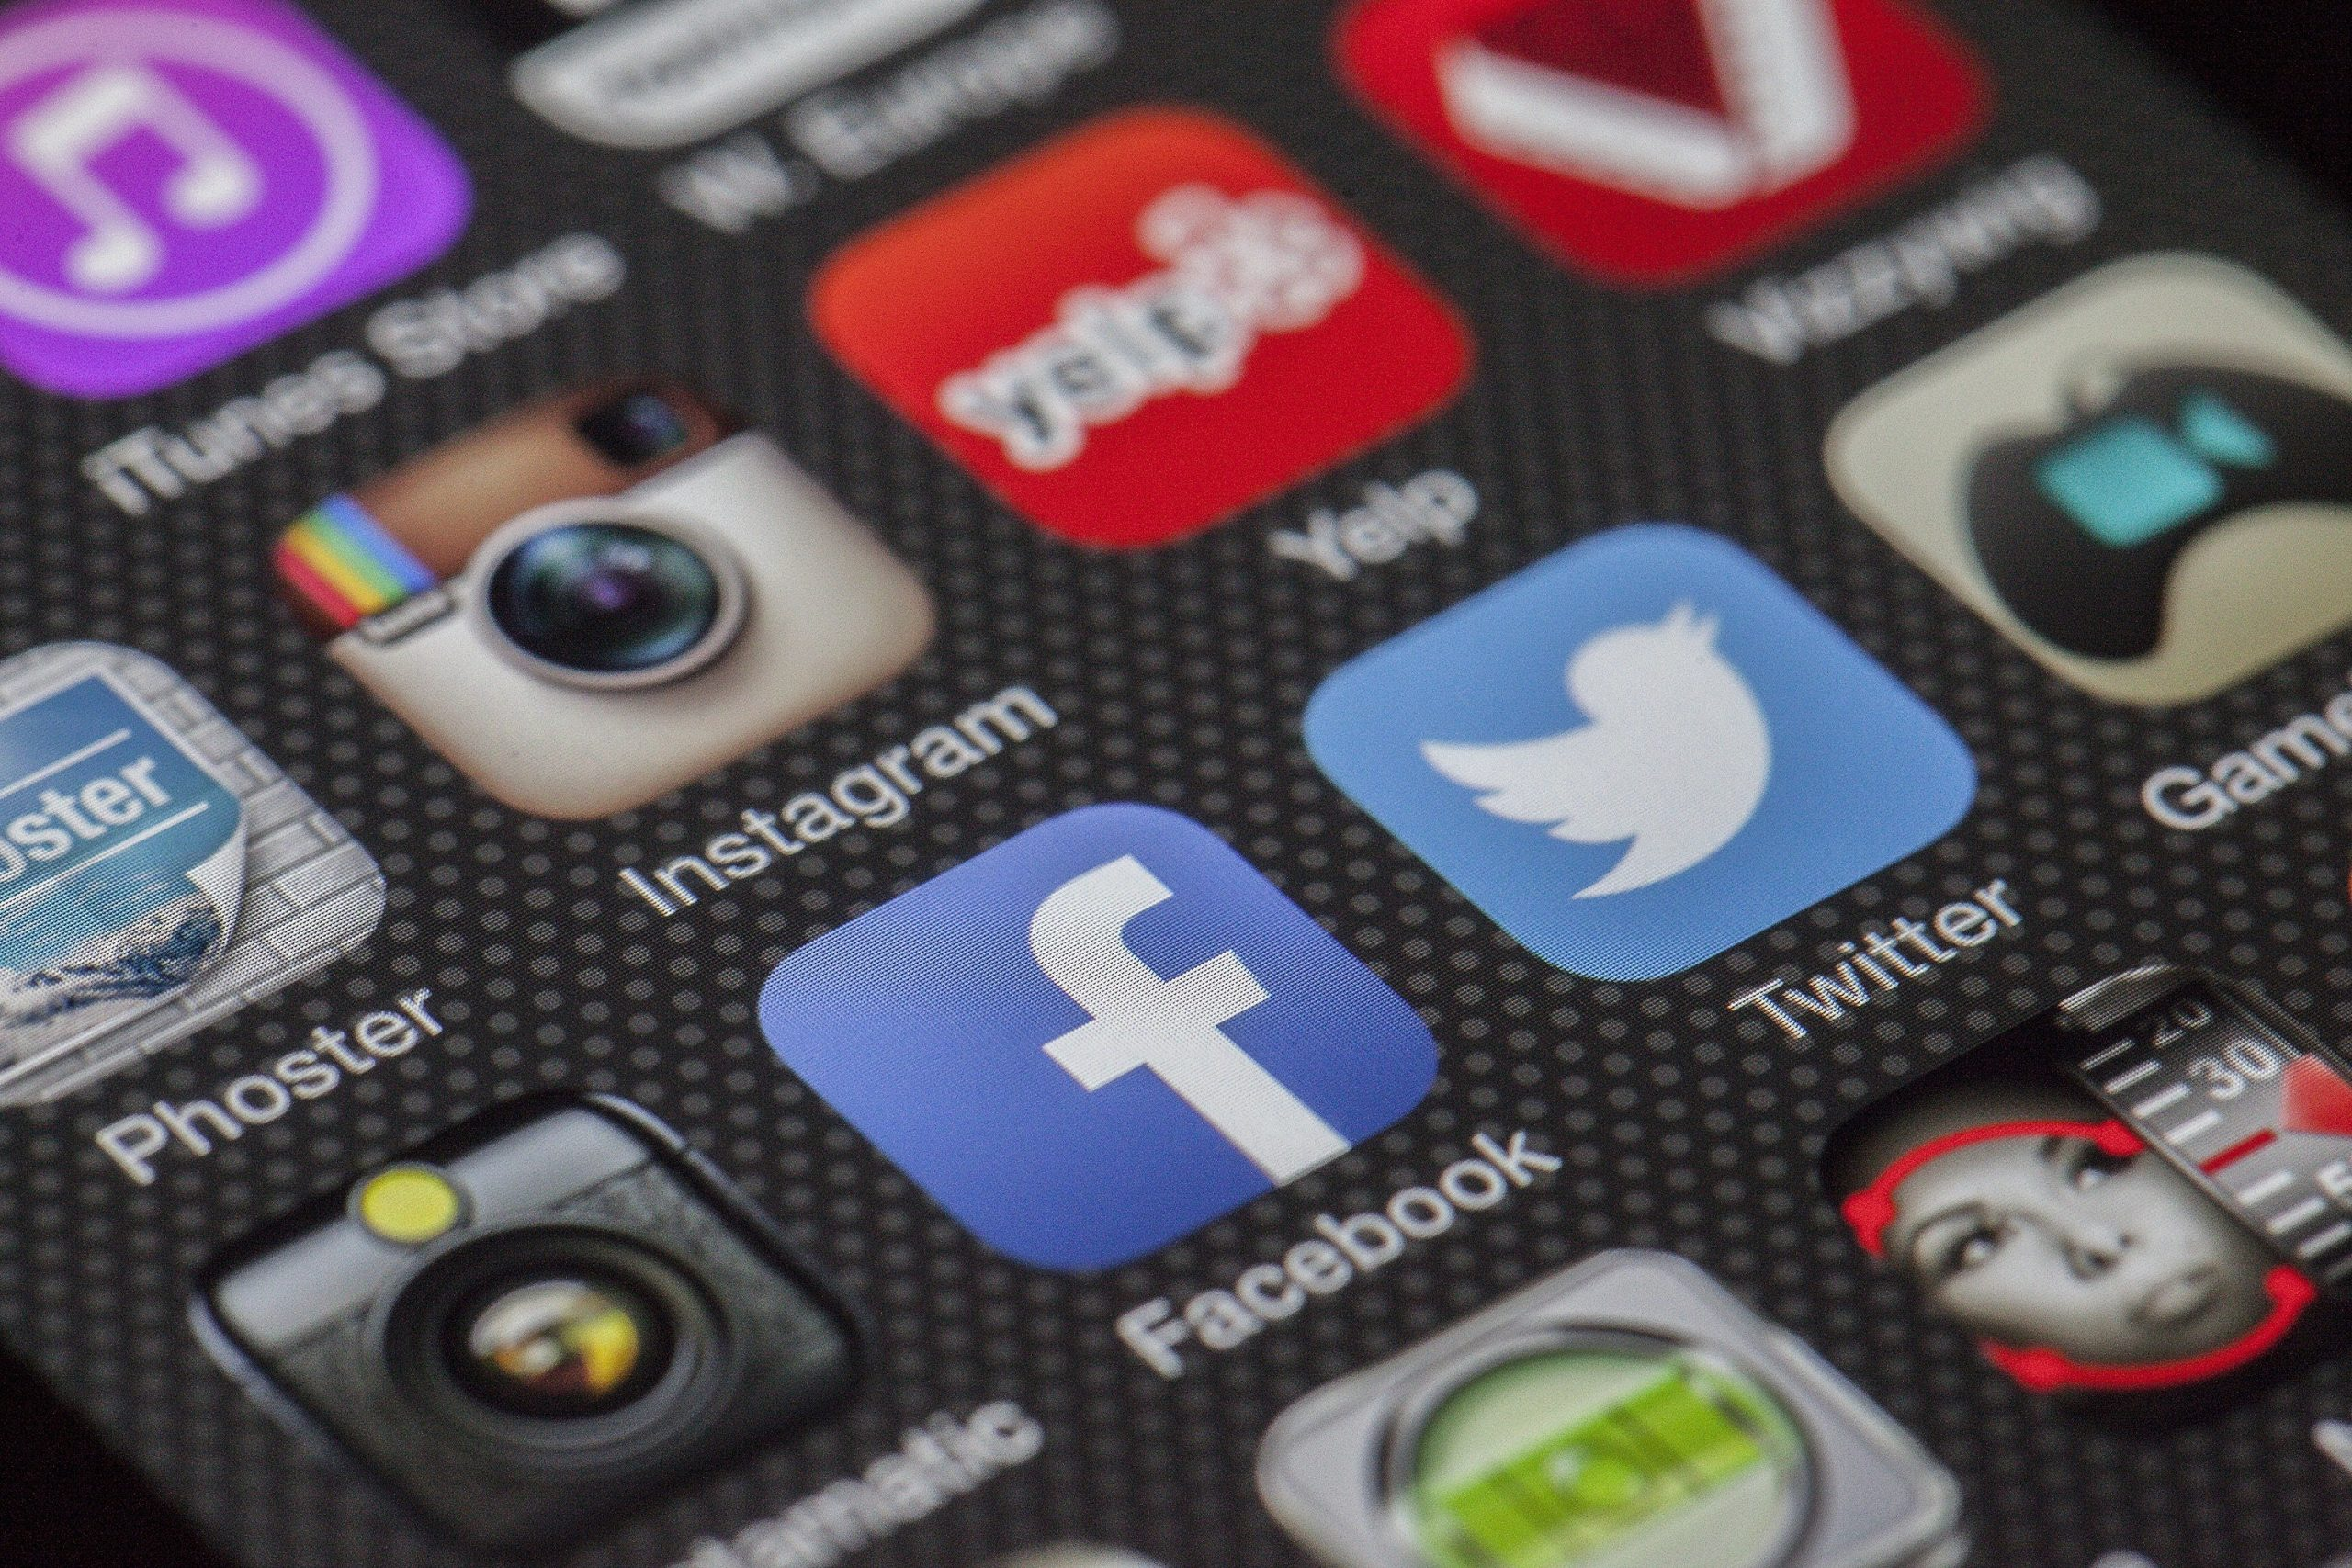 The opposition fears the feds would have overreaching powers to regulate what Canadians post on social media